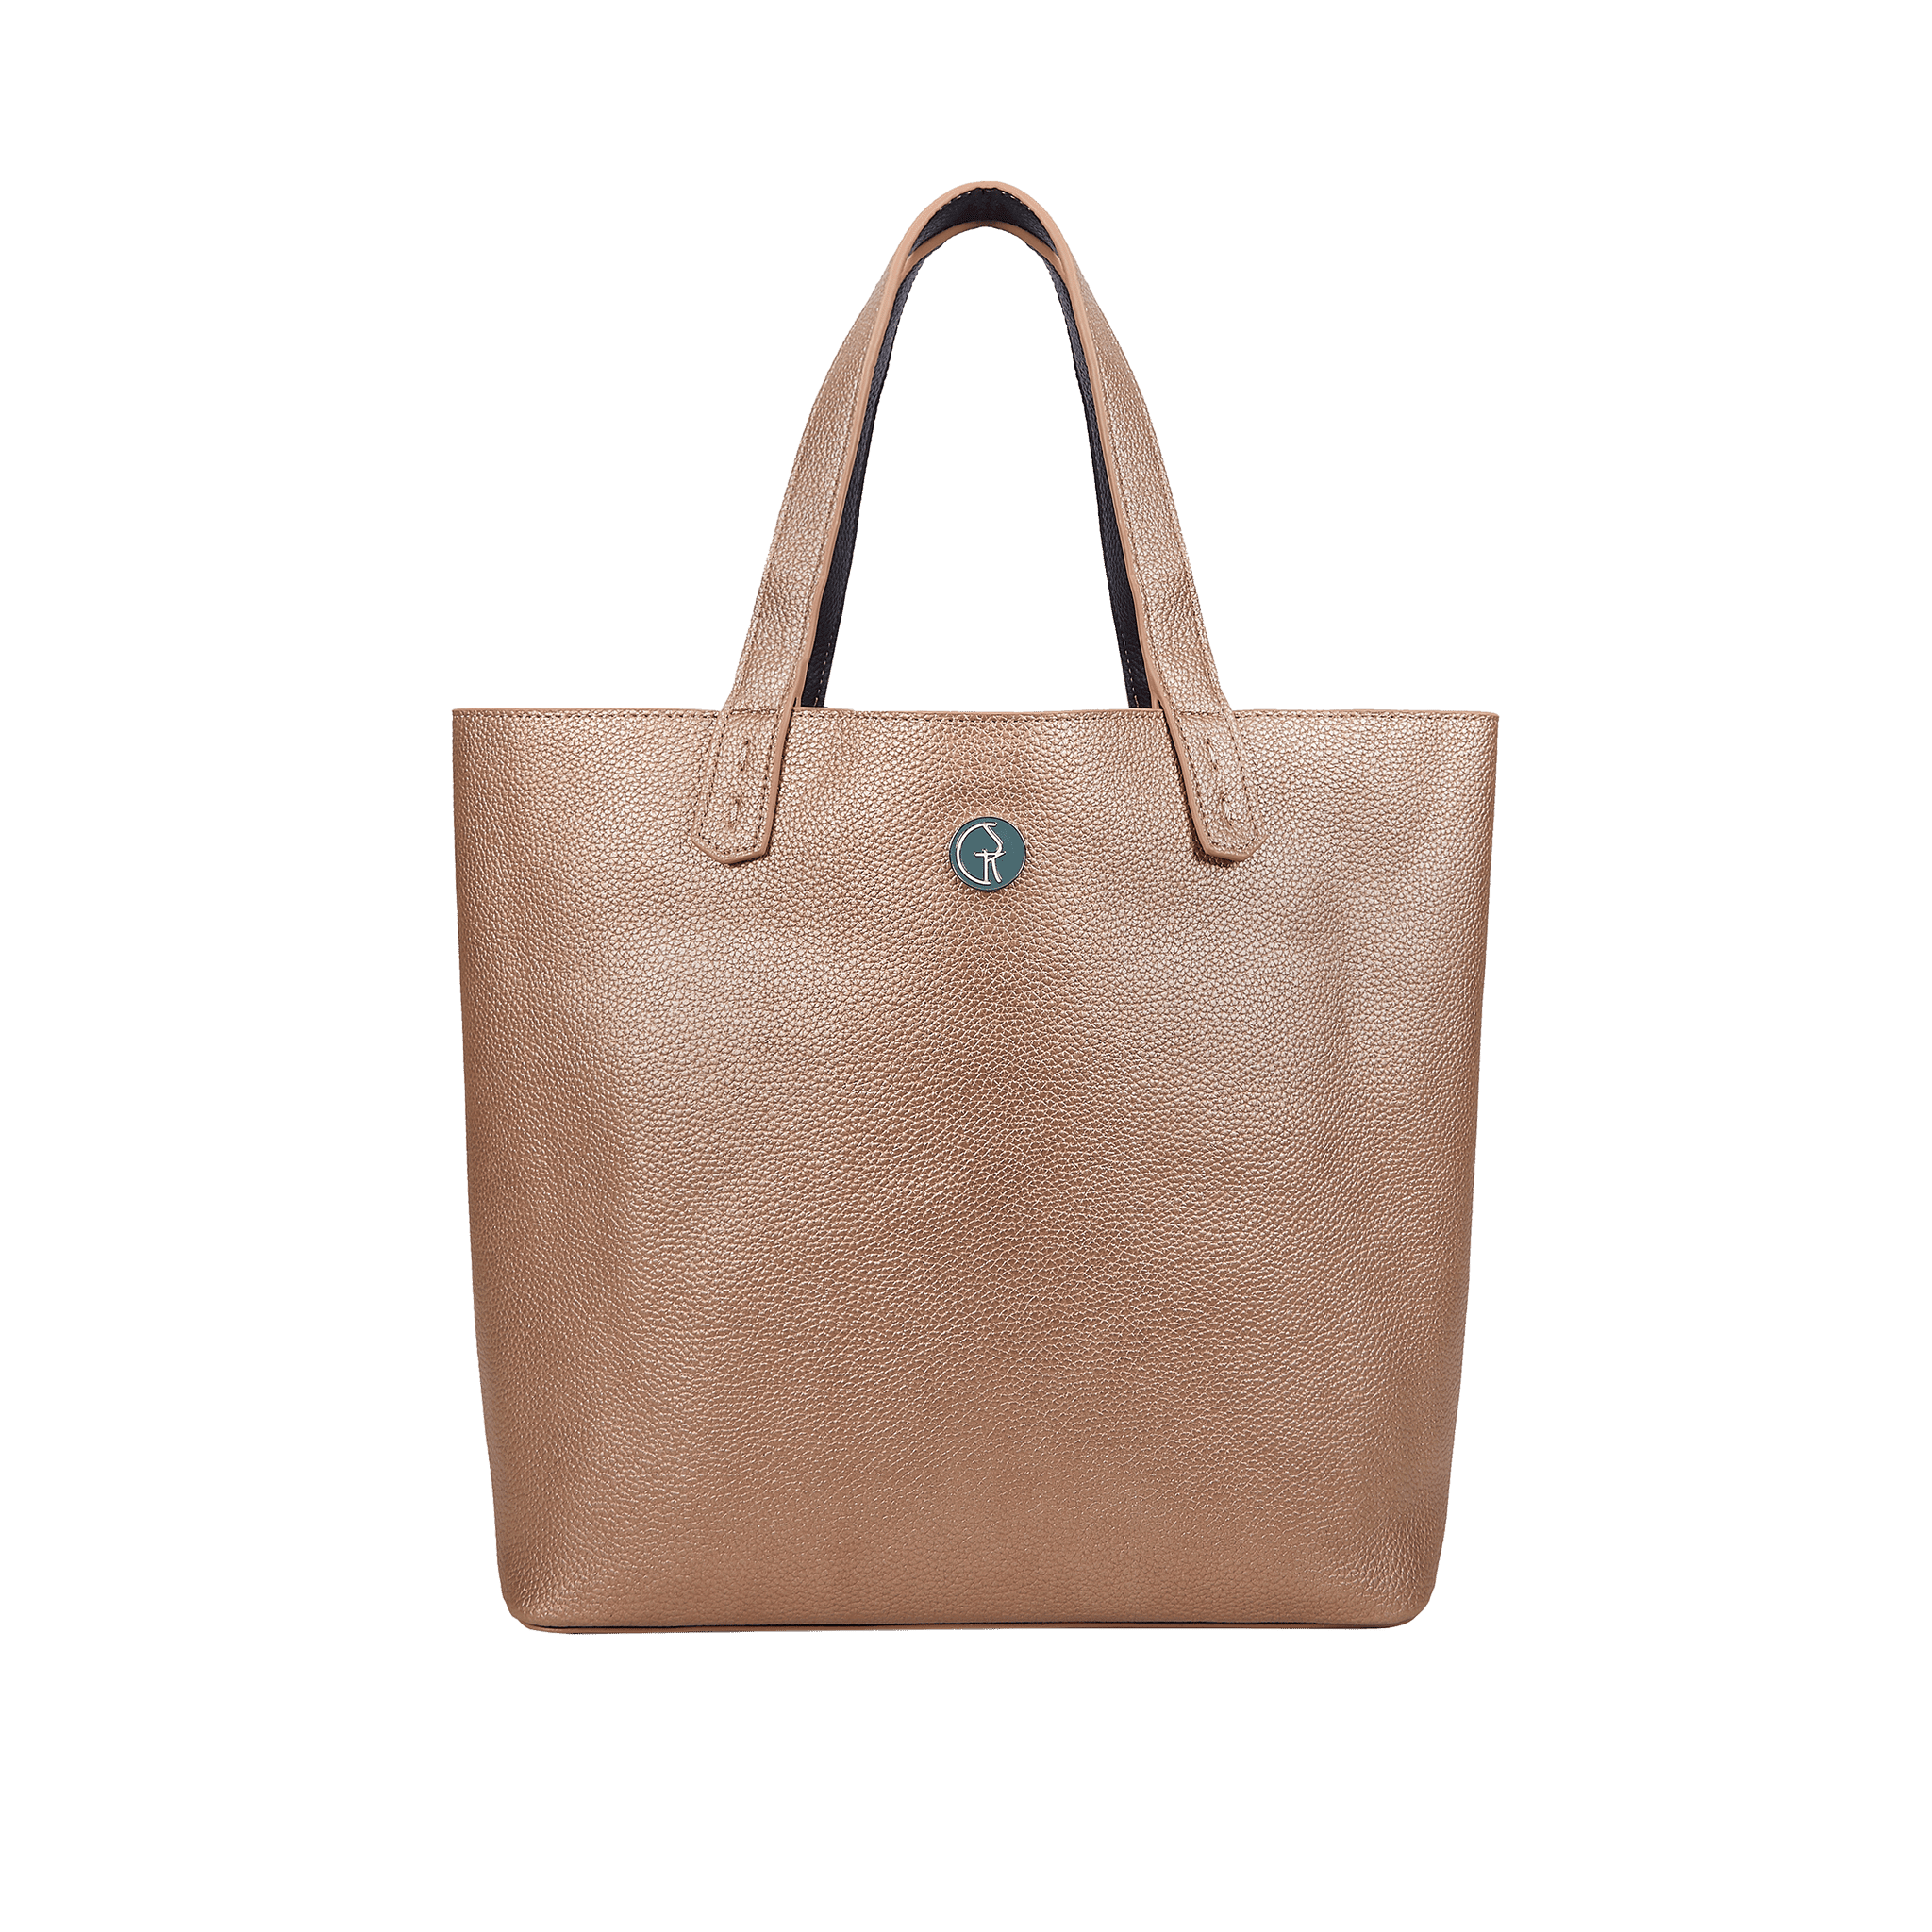 The Morphbag by GSK 3 Vegan Leather Bags in 1   Onyx & Rose Gold